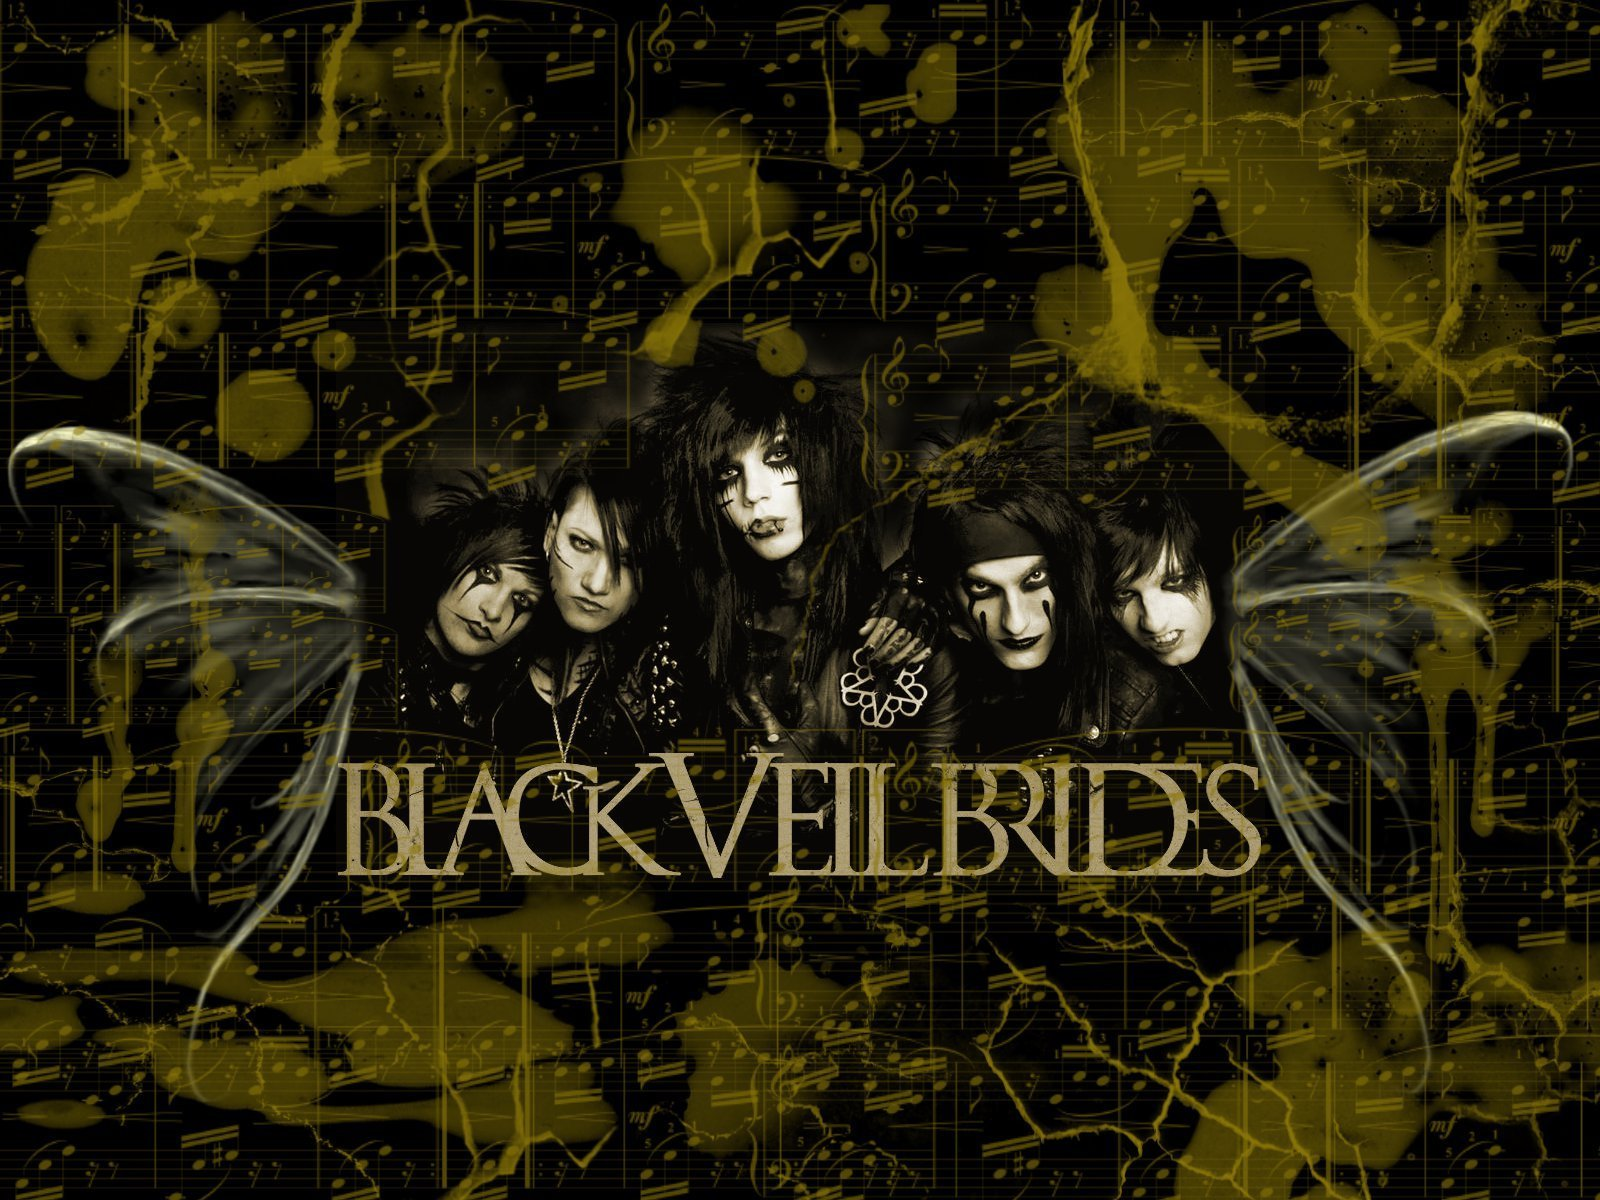 Black Veil Brides images Black Veil Brides HD wallpaper and background 1600x1200